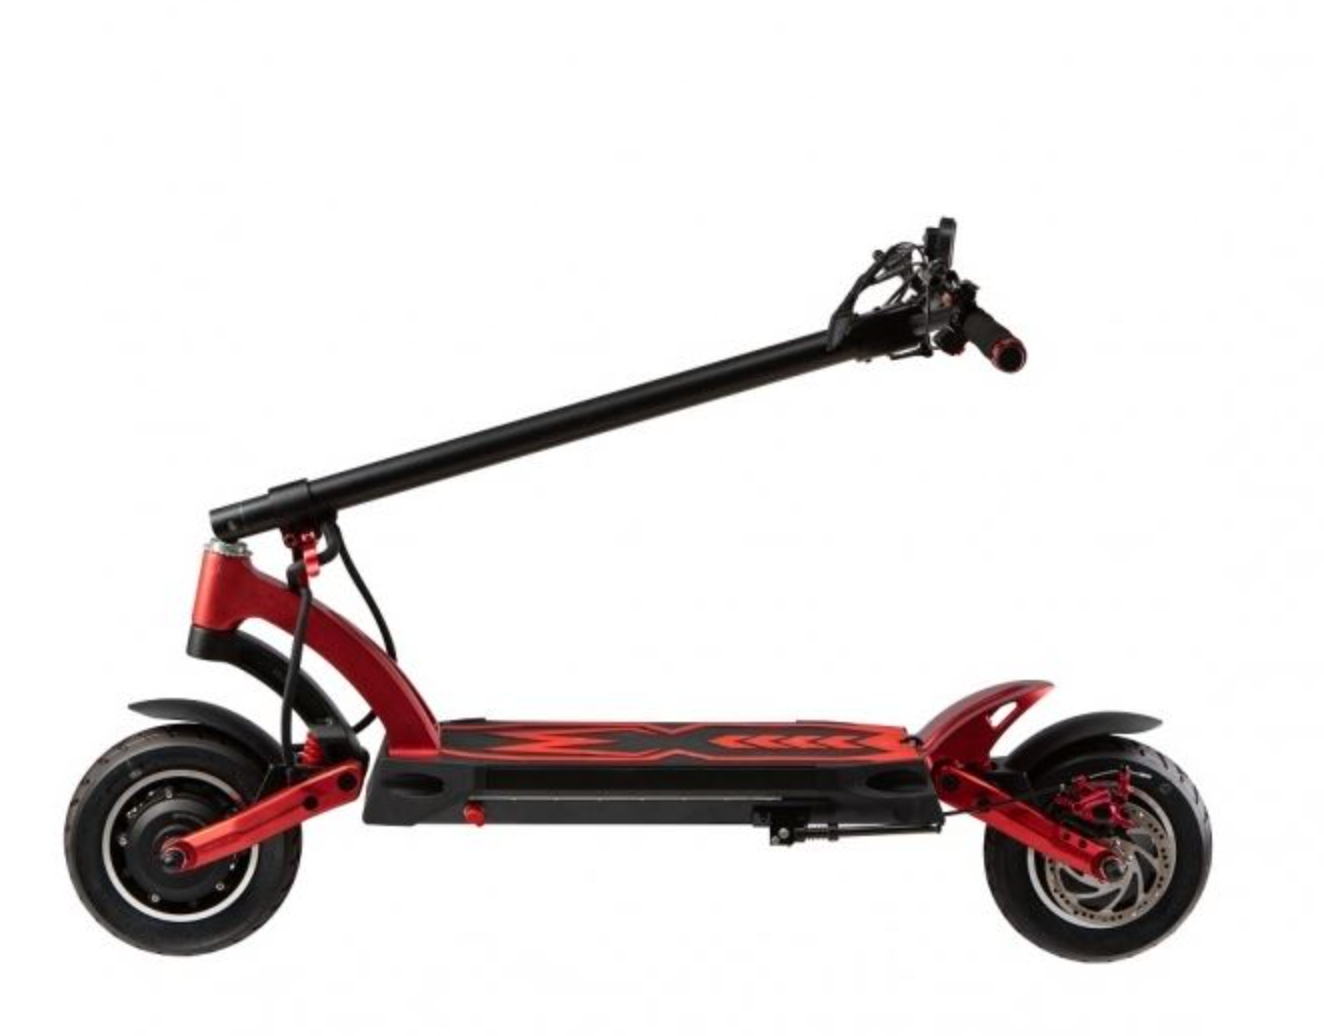 Kaabo Mantis 10 Lite Electric Scooter